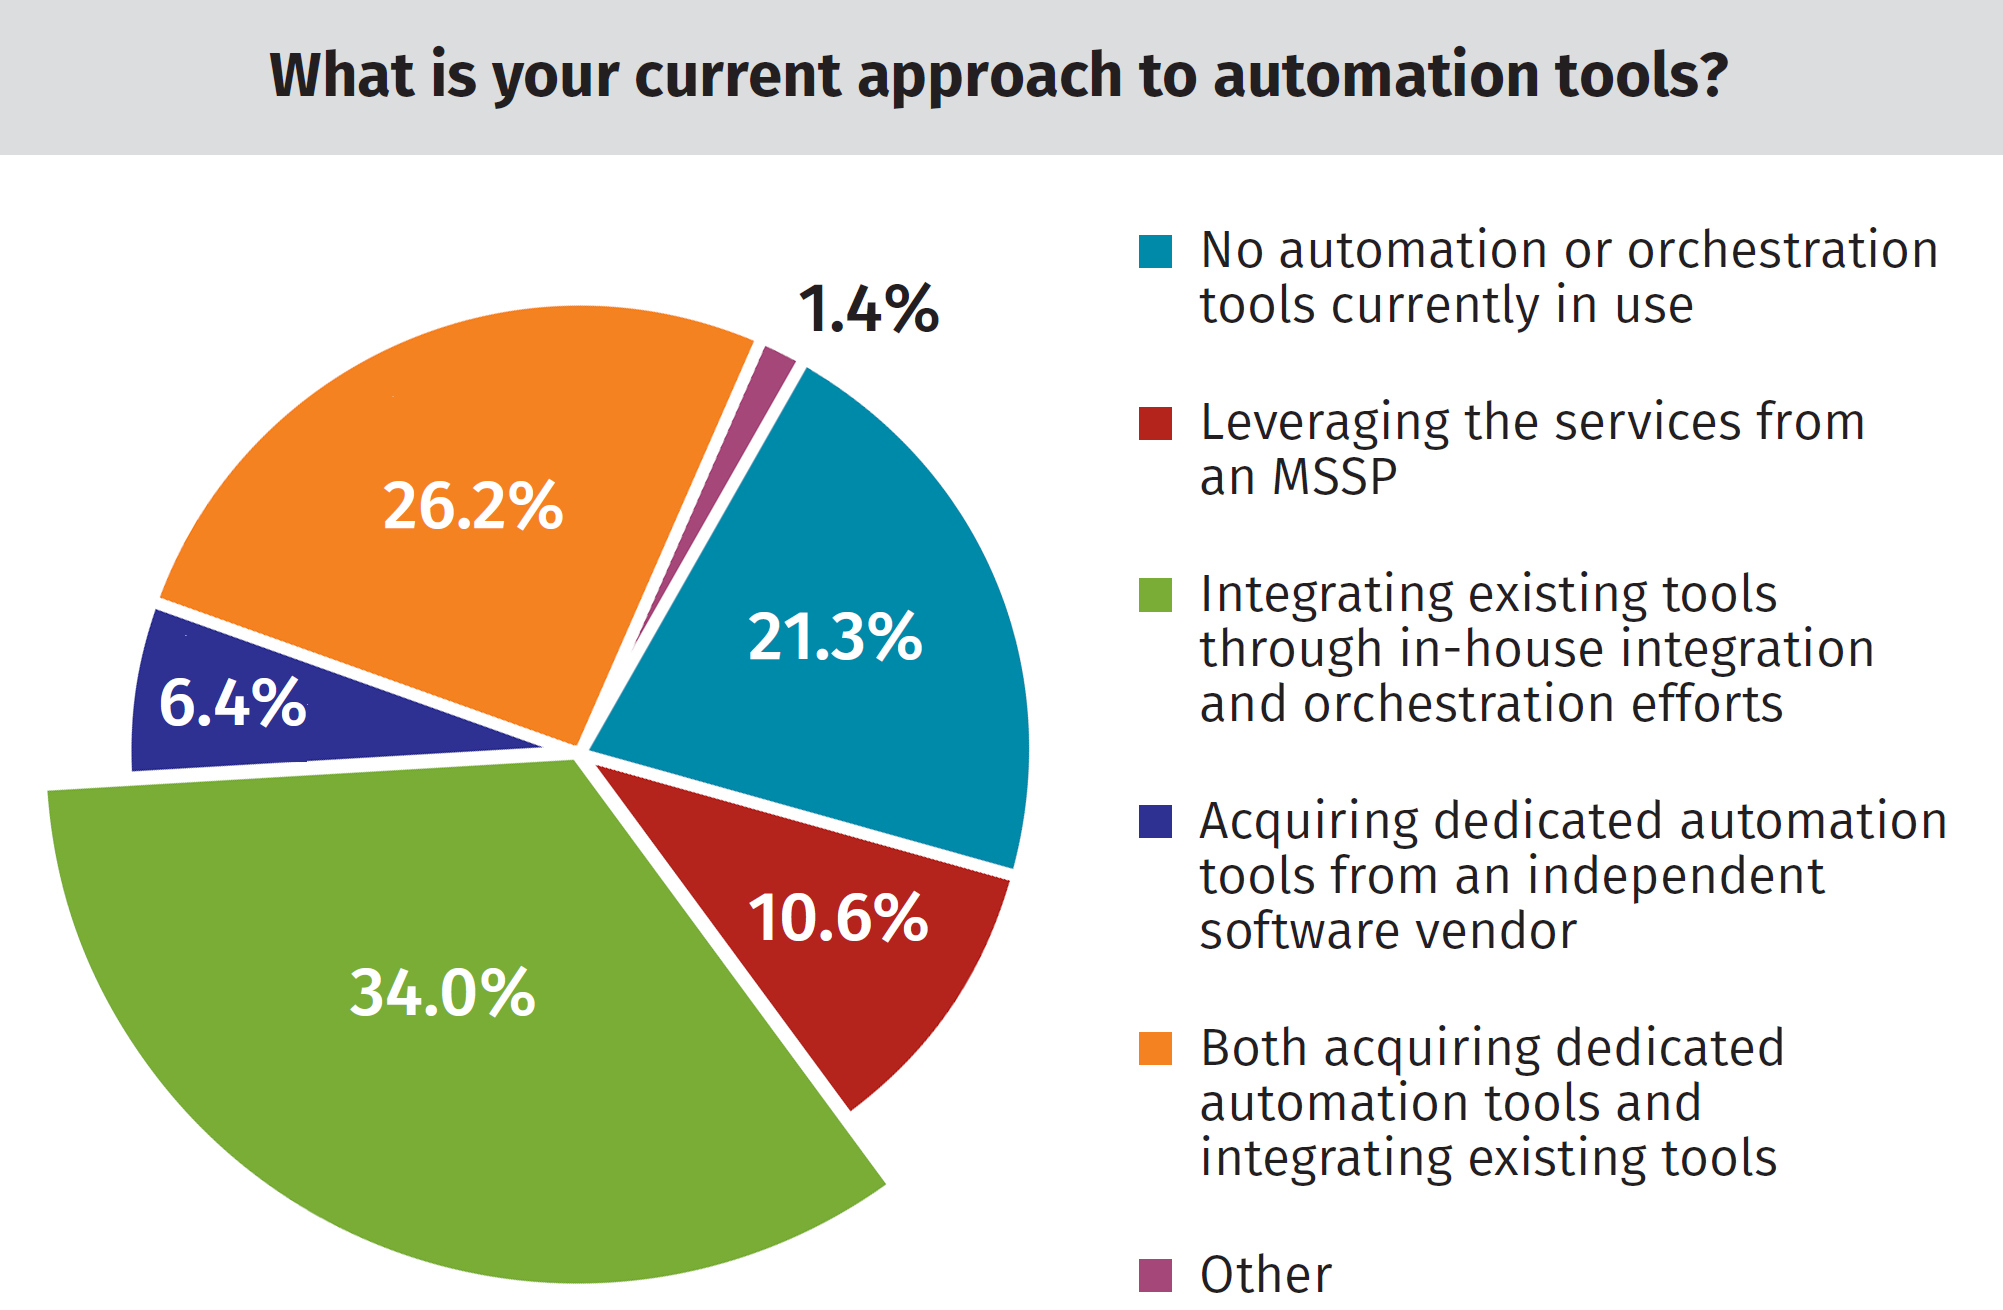 What is your current approach to automation tools?